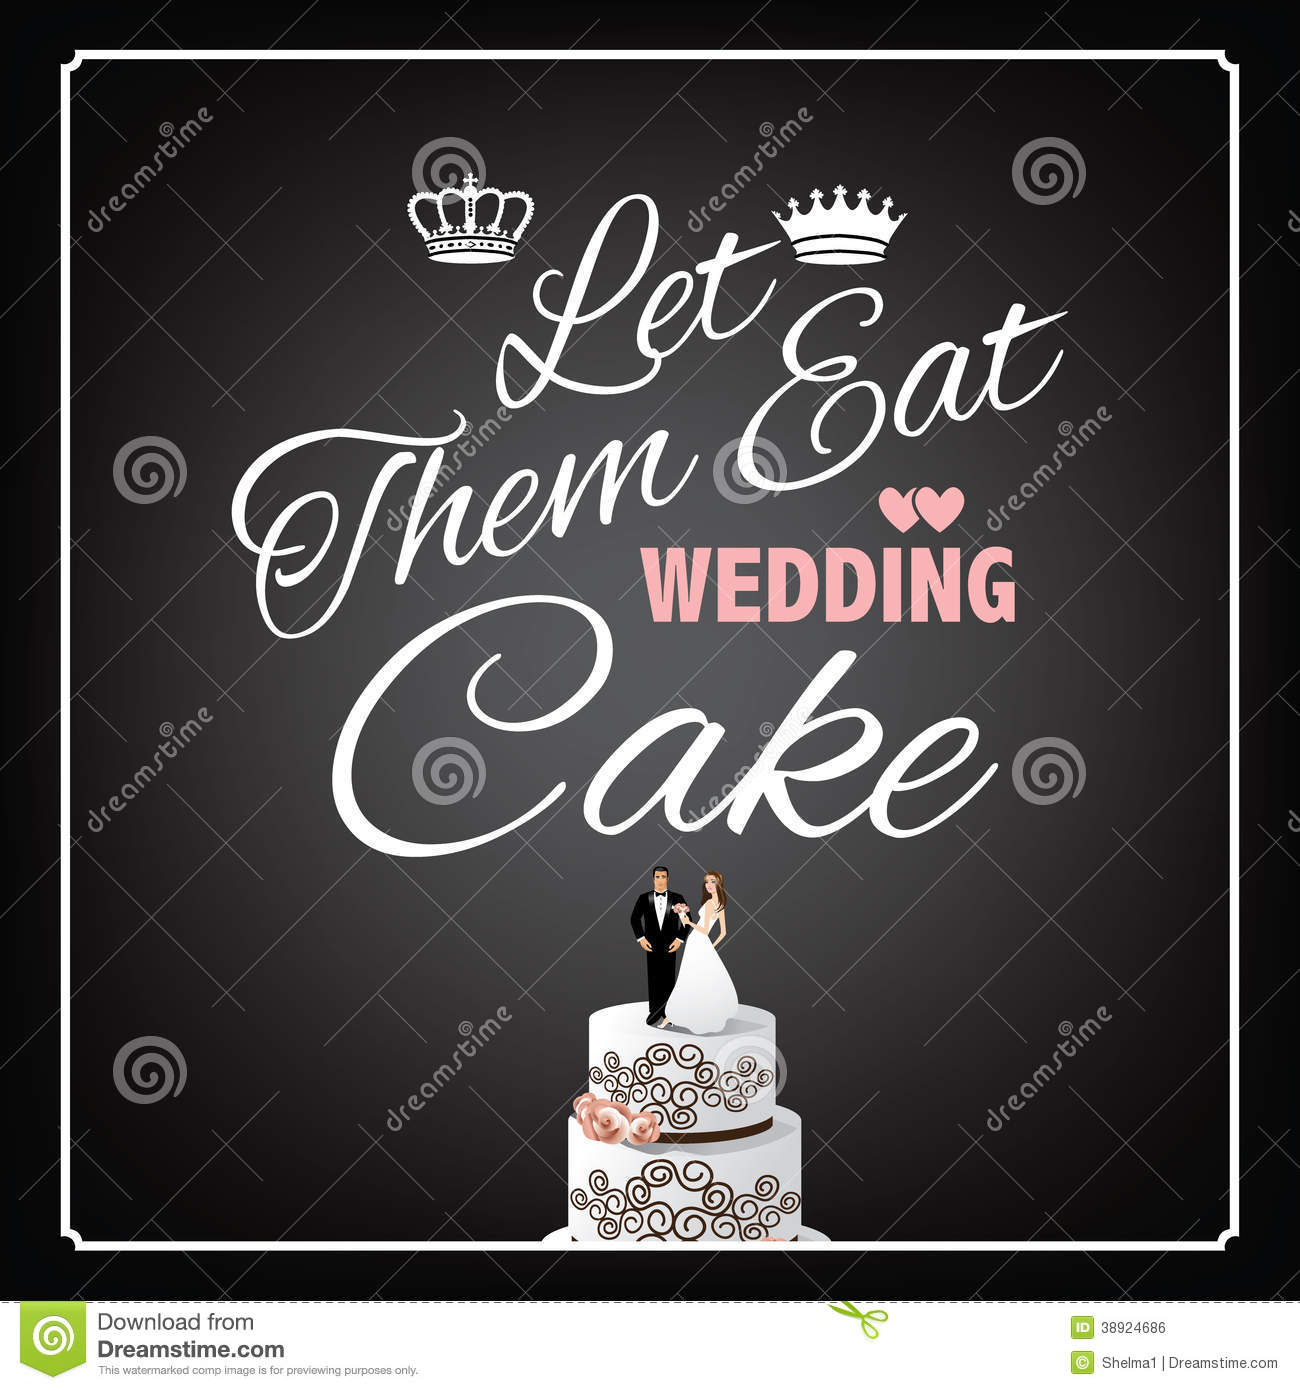 dream interpretation eating wedding cake let them eat wedding cake design stock vector image 13730